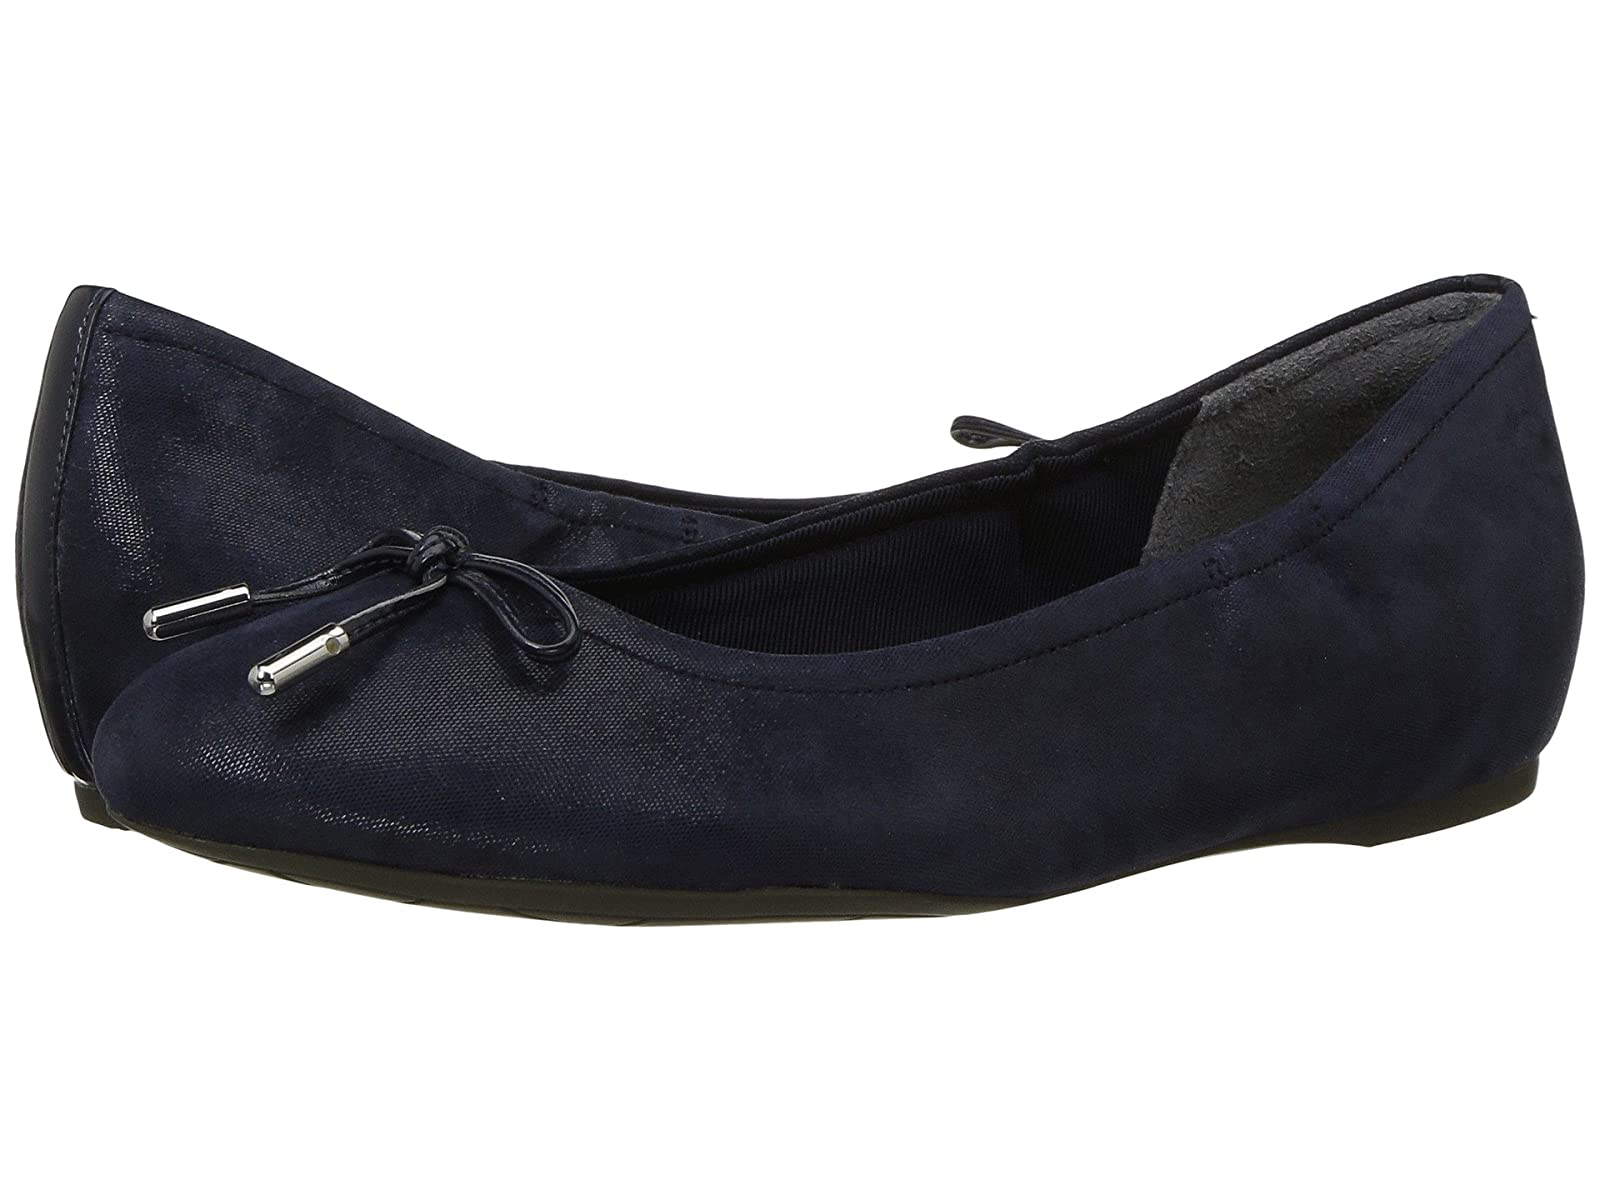 Rockport Total Motion Hidden Wedge Tied BalletCheap and distinctive eye-catching shoes